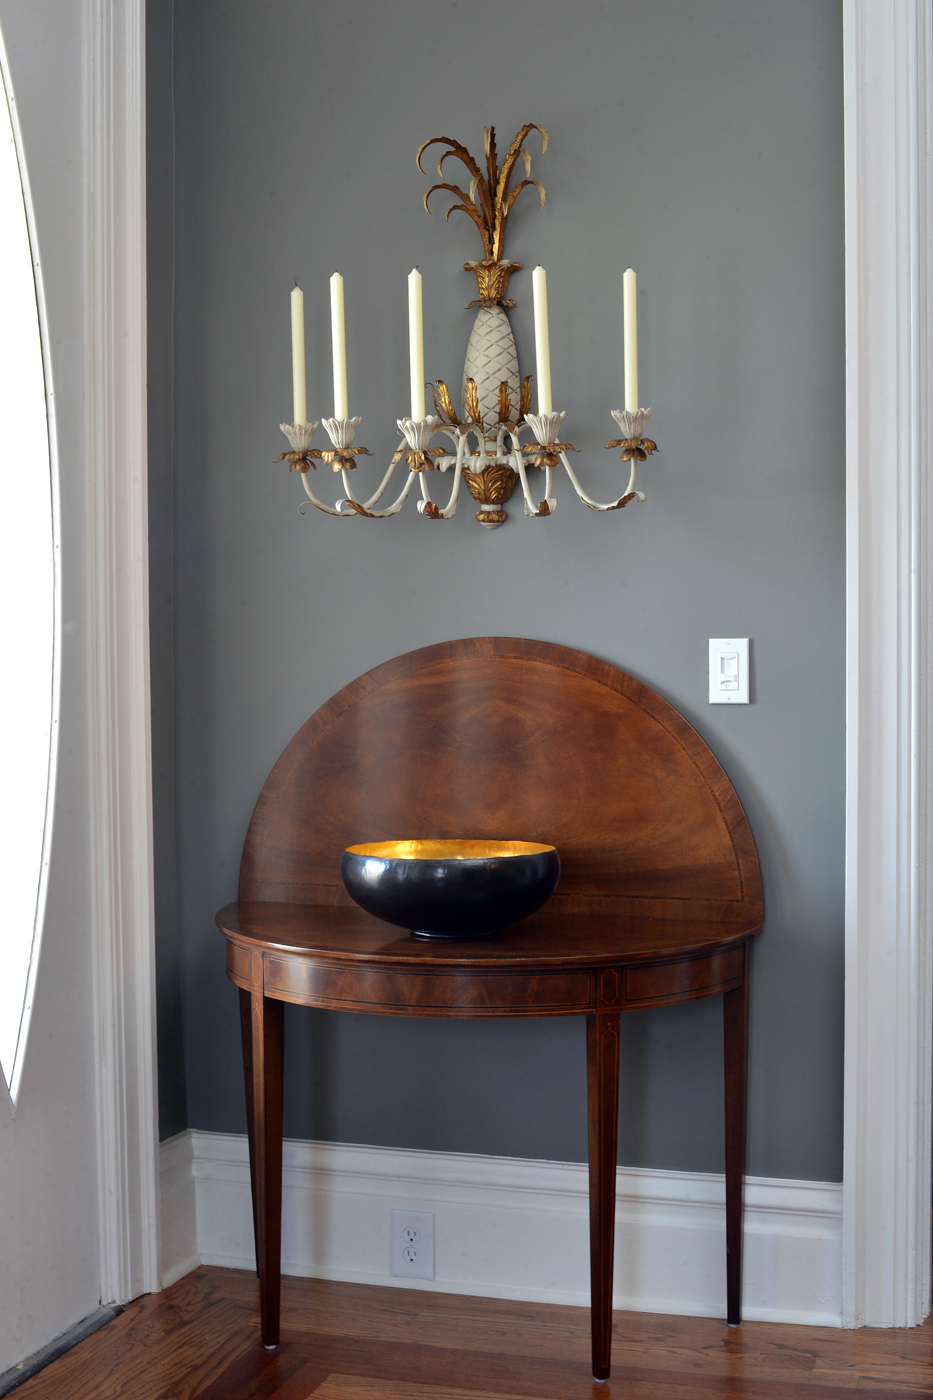 Detail of wooden Hepplewhite style demilune card table in entry room topped by decorative bowl | Savage Interior Design